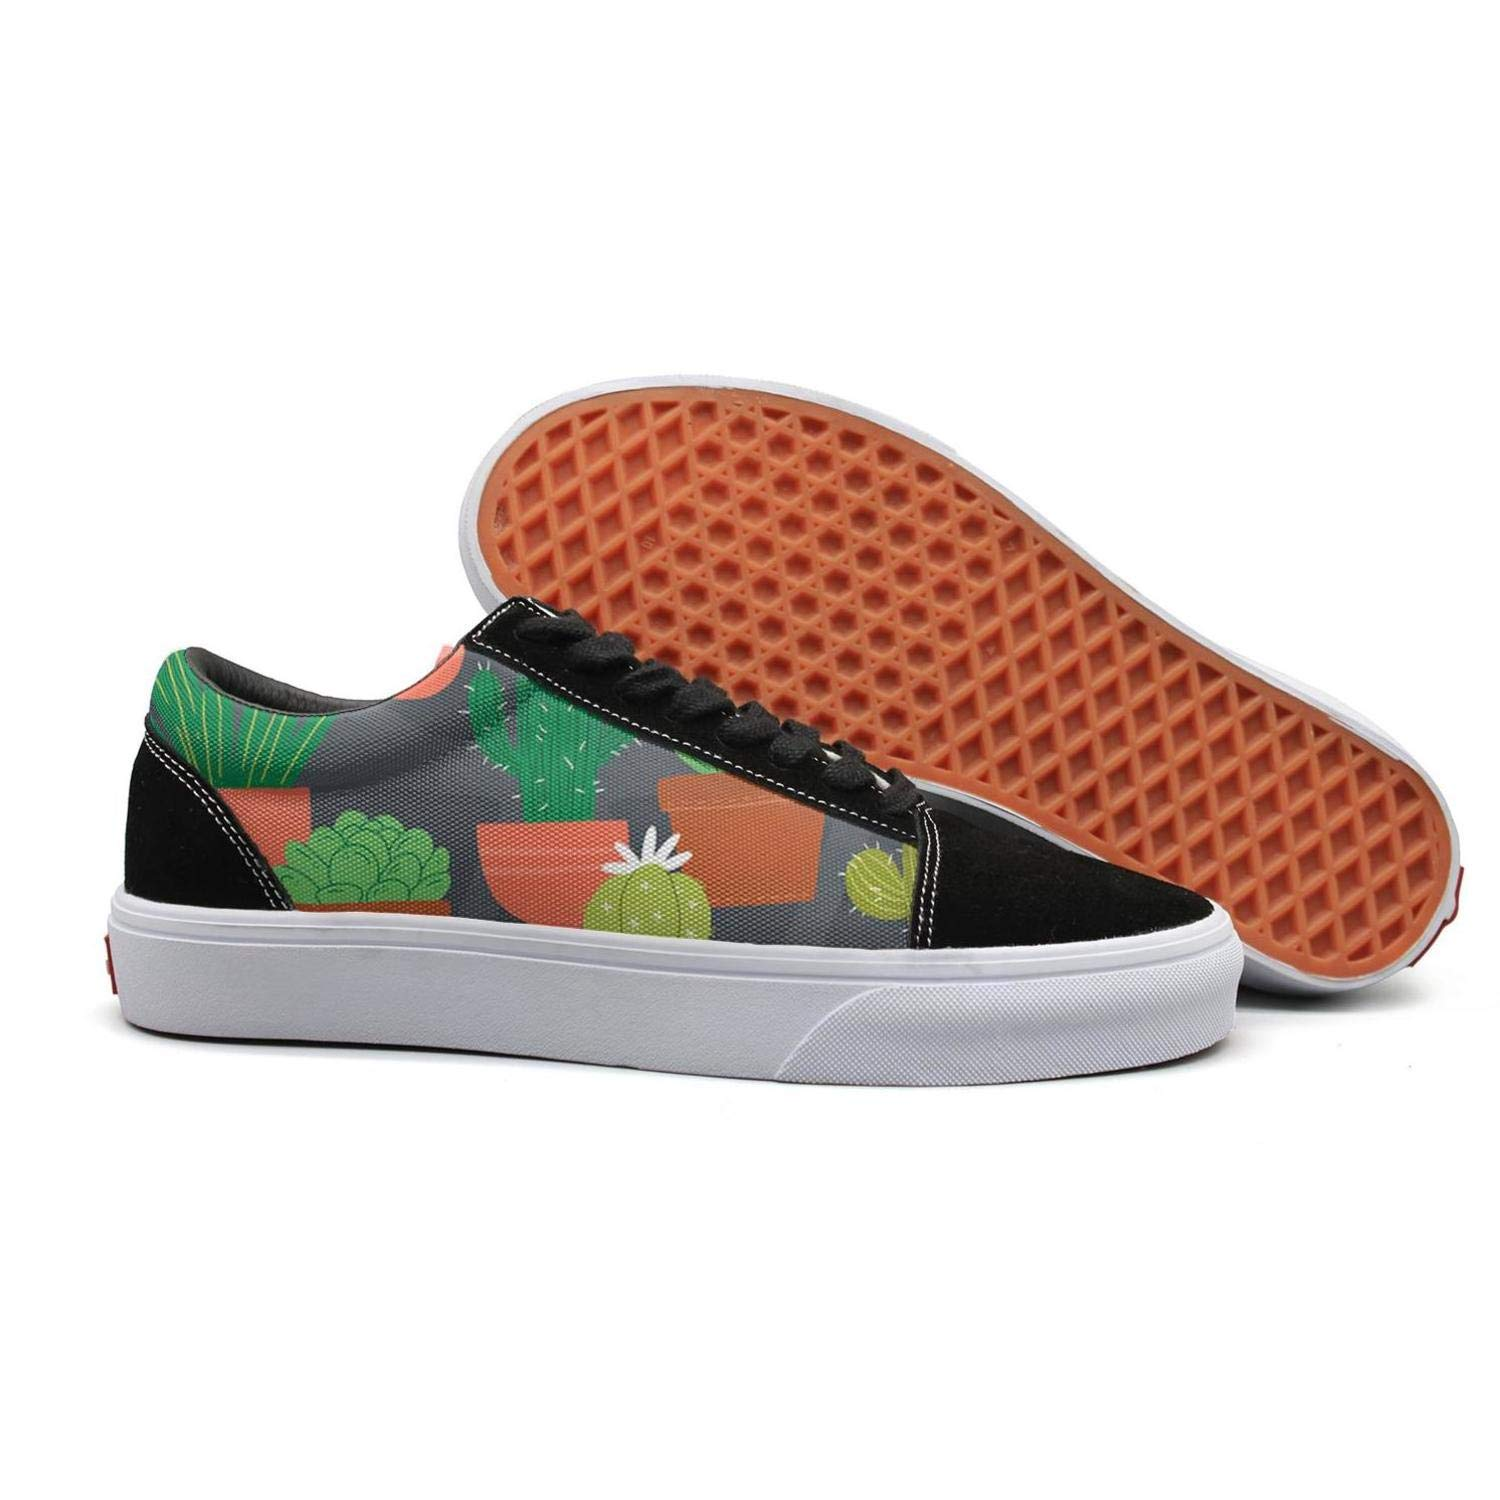 Cactus Plants colorful 5.5 B(M) US Uieort Cactus Plants colorful Graphic Design Drawing Womens Lace up Canvas shoes Lightweight